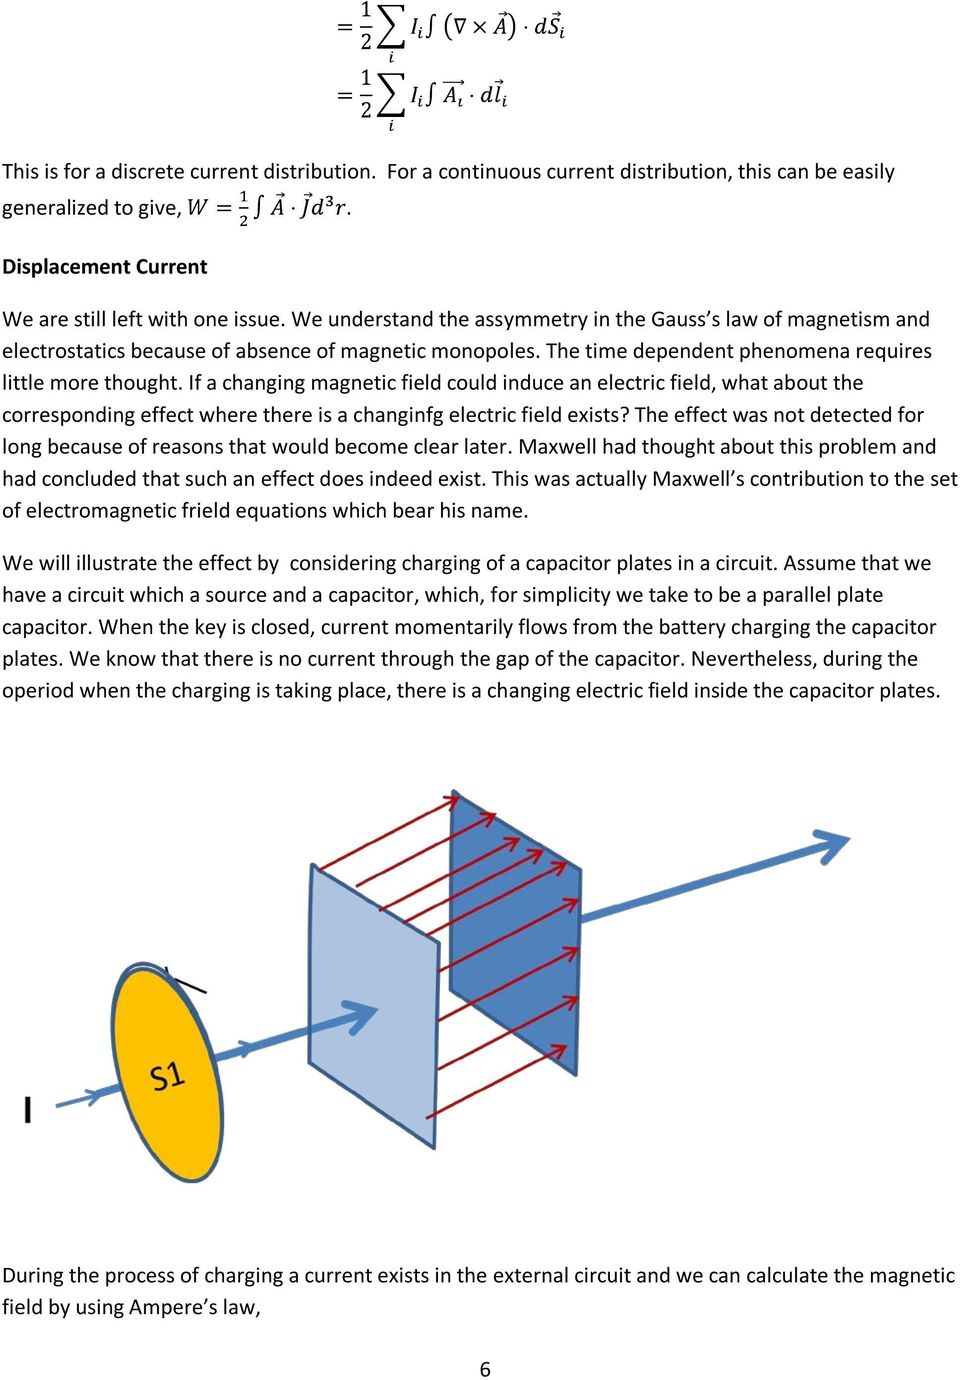 If a changing magnetic field could induce an electric field, what about the corresponding effect where there is a changinfg electric field exists?